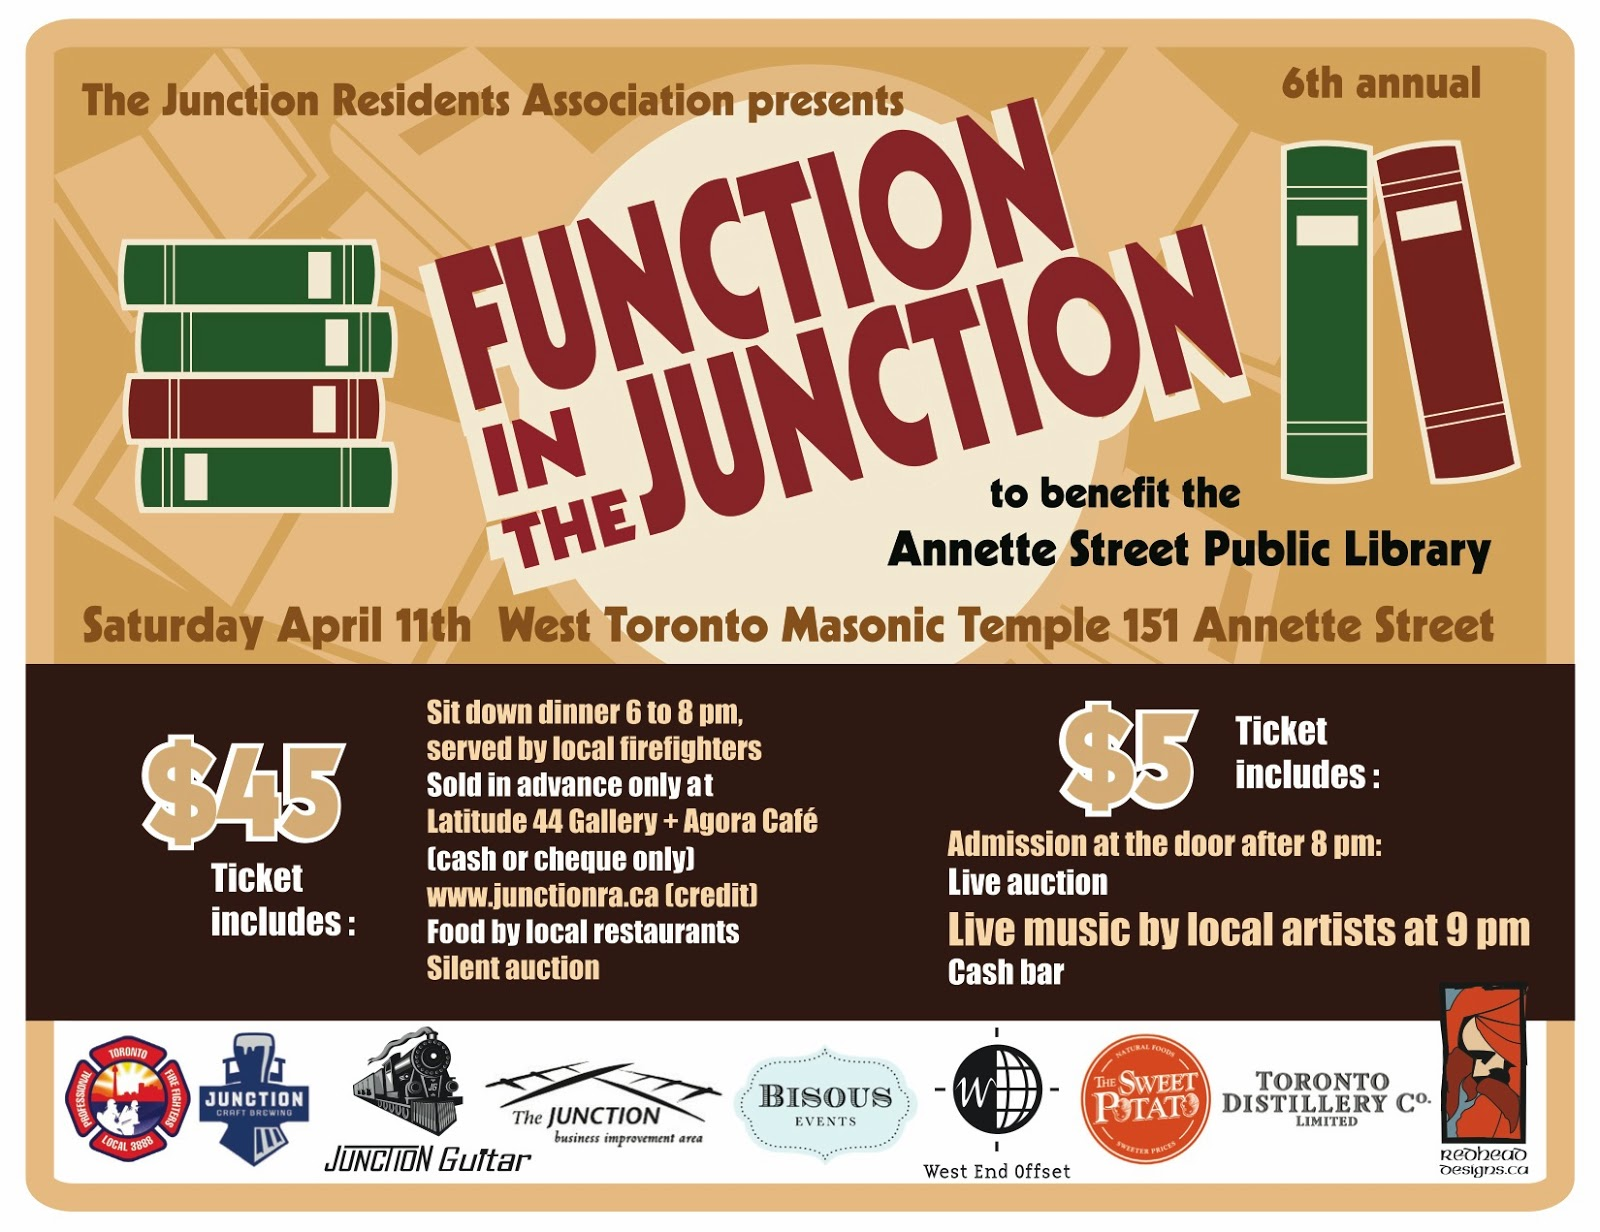 Function in the Junction - fundraiser for Annette Street Public Library, Saturday, April 11, 2015, West Toronto Masonic Temple, Toronto